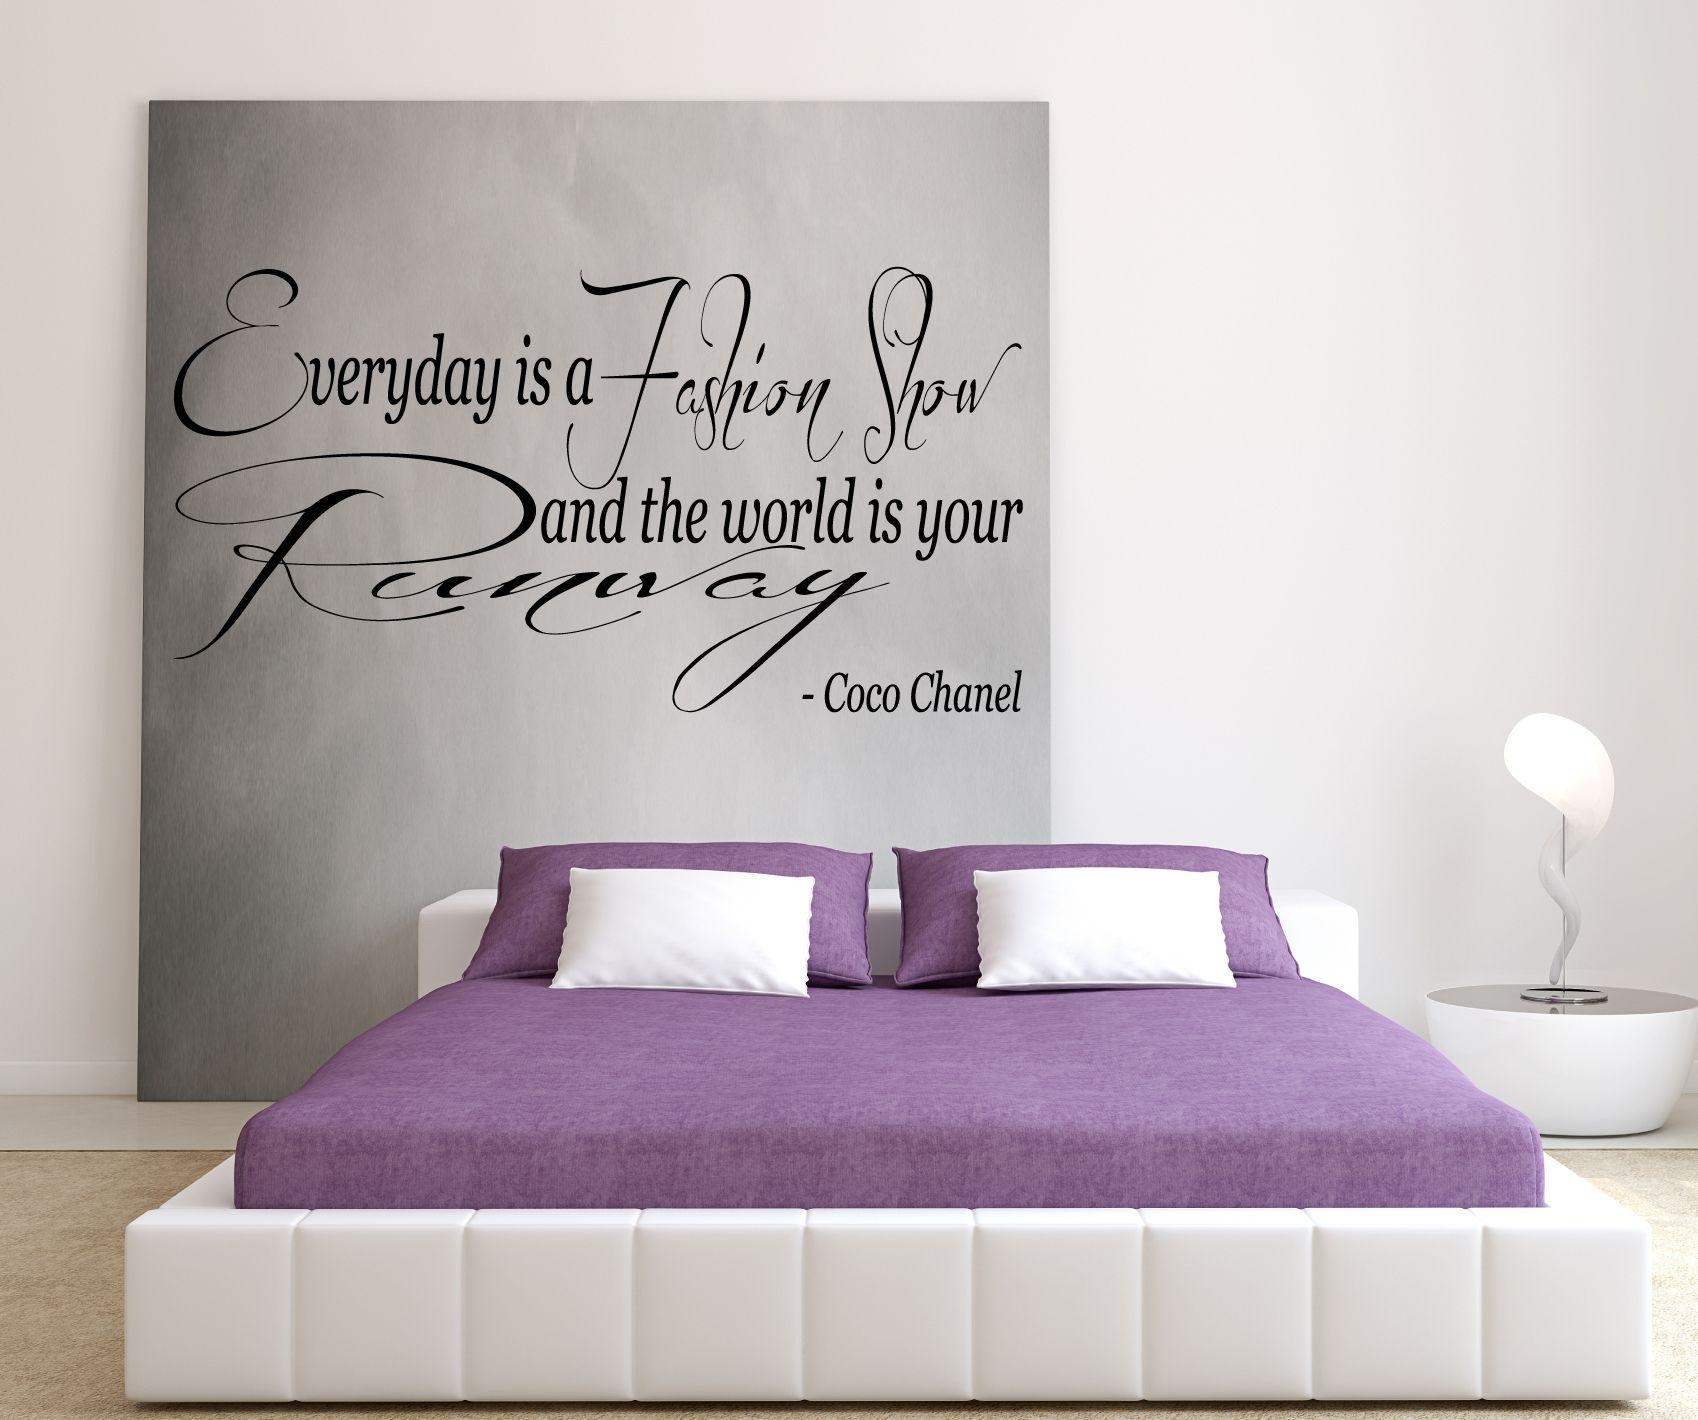 Coco Chanel – Everyday Is A Fashion Show And The World Is Your Throughout Coco Chanel Wall Decals (View 10 of 20)